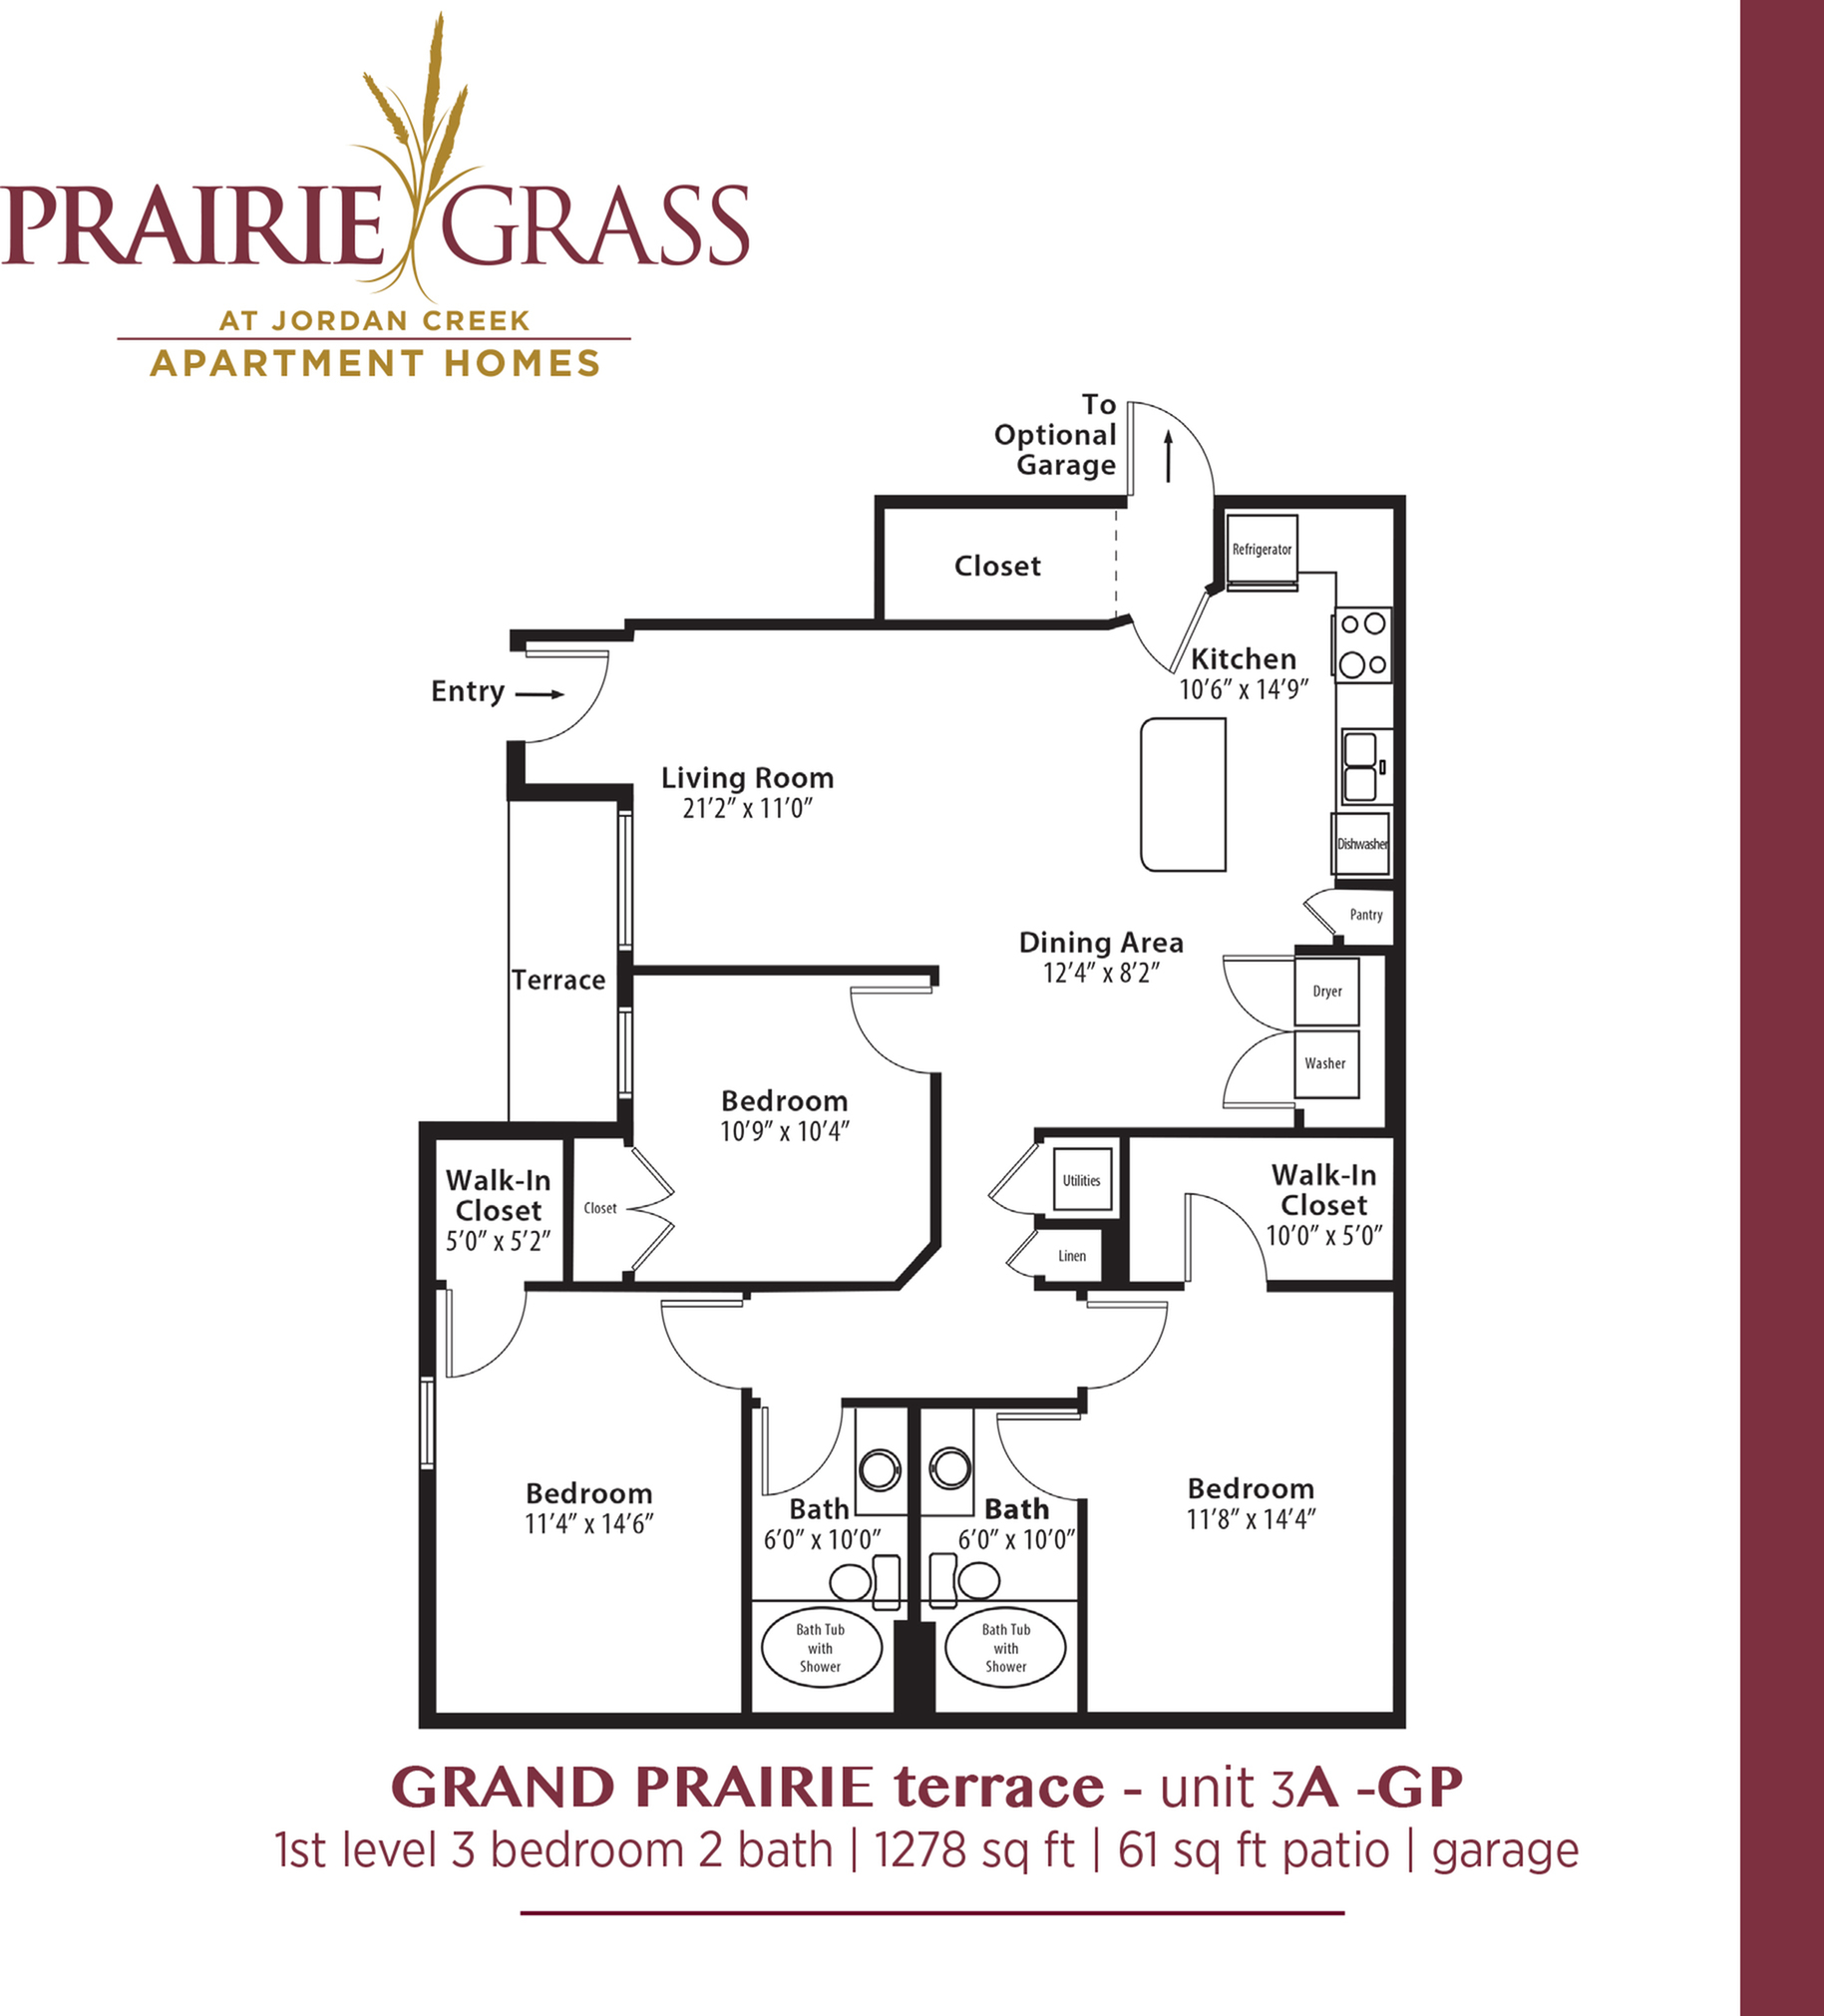 GrandPrairie Terrace - Lower 3 Bedroom with Patio and Attached Garage